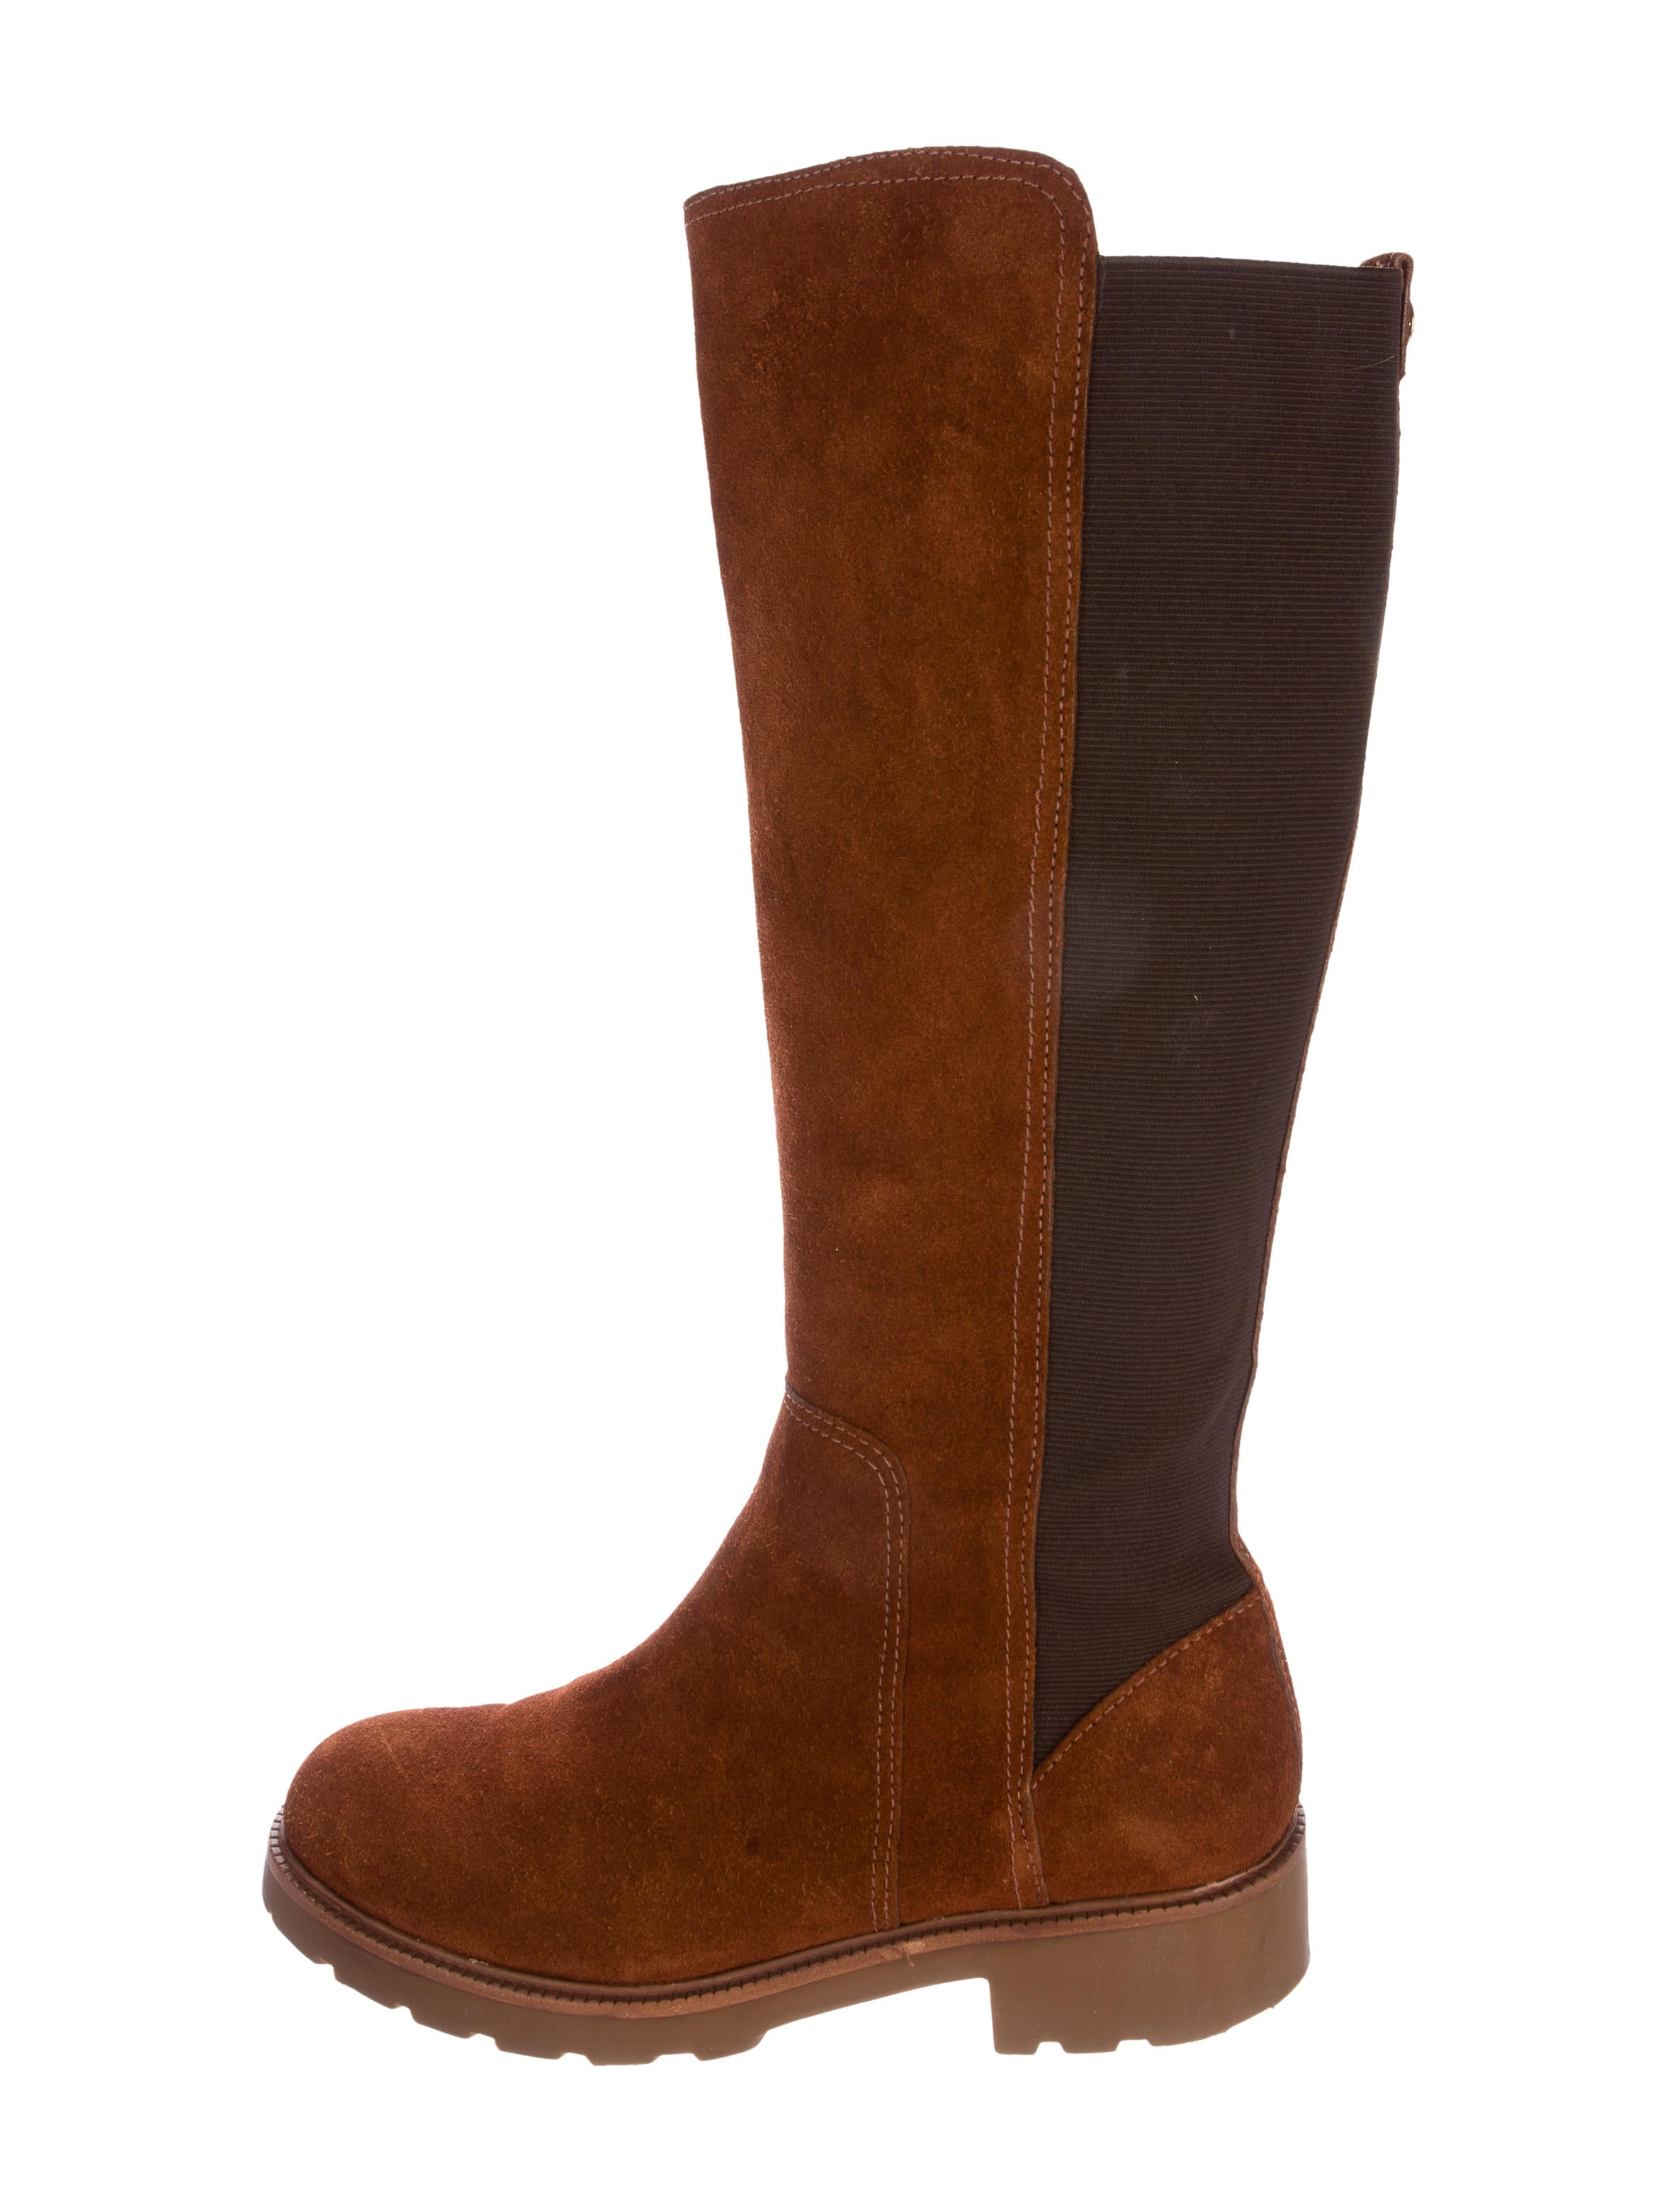 burch suede knee high boots shoes wto88486 the